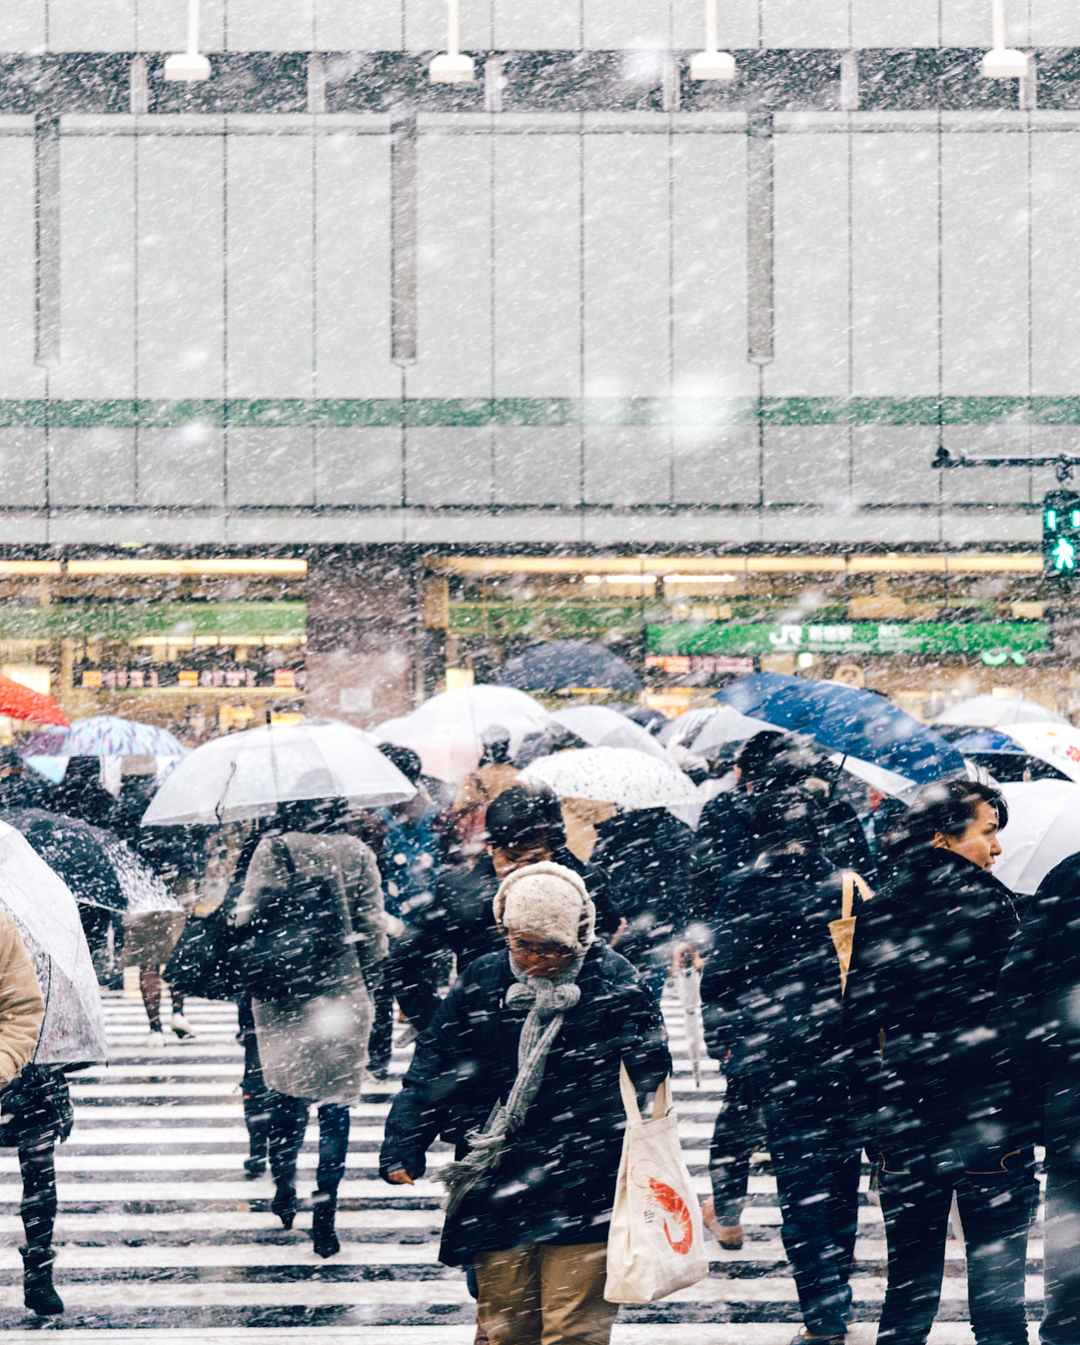 Magical Images of Tokyo Under the Snow